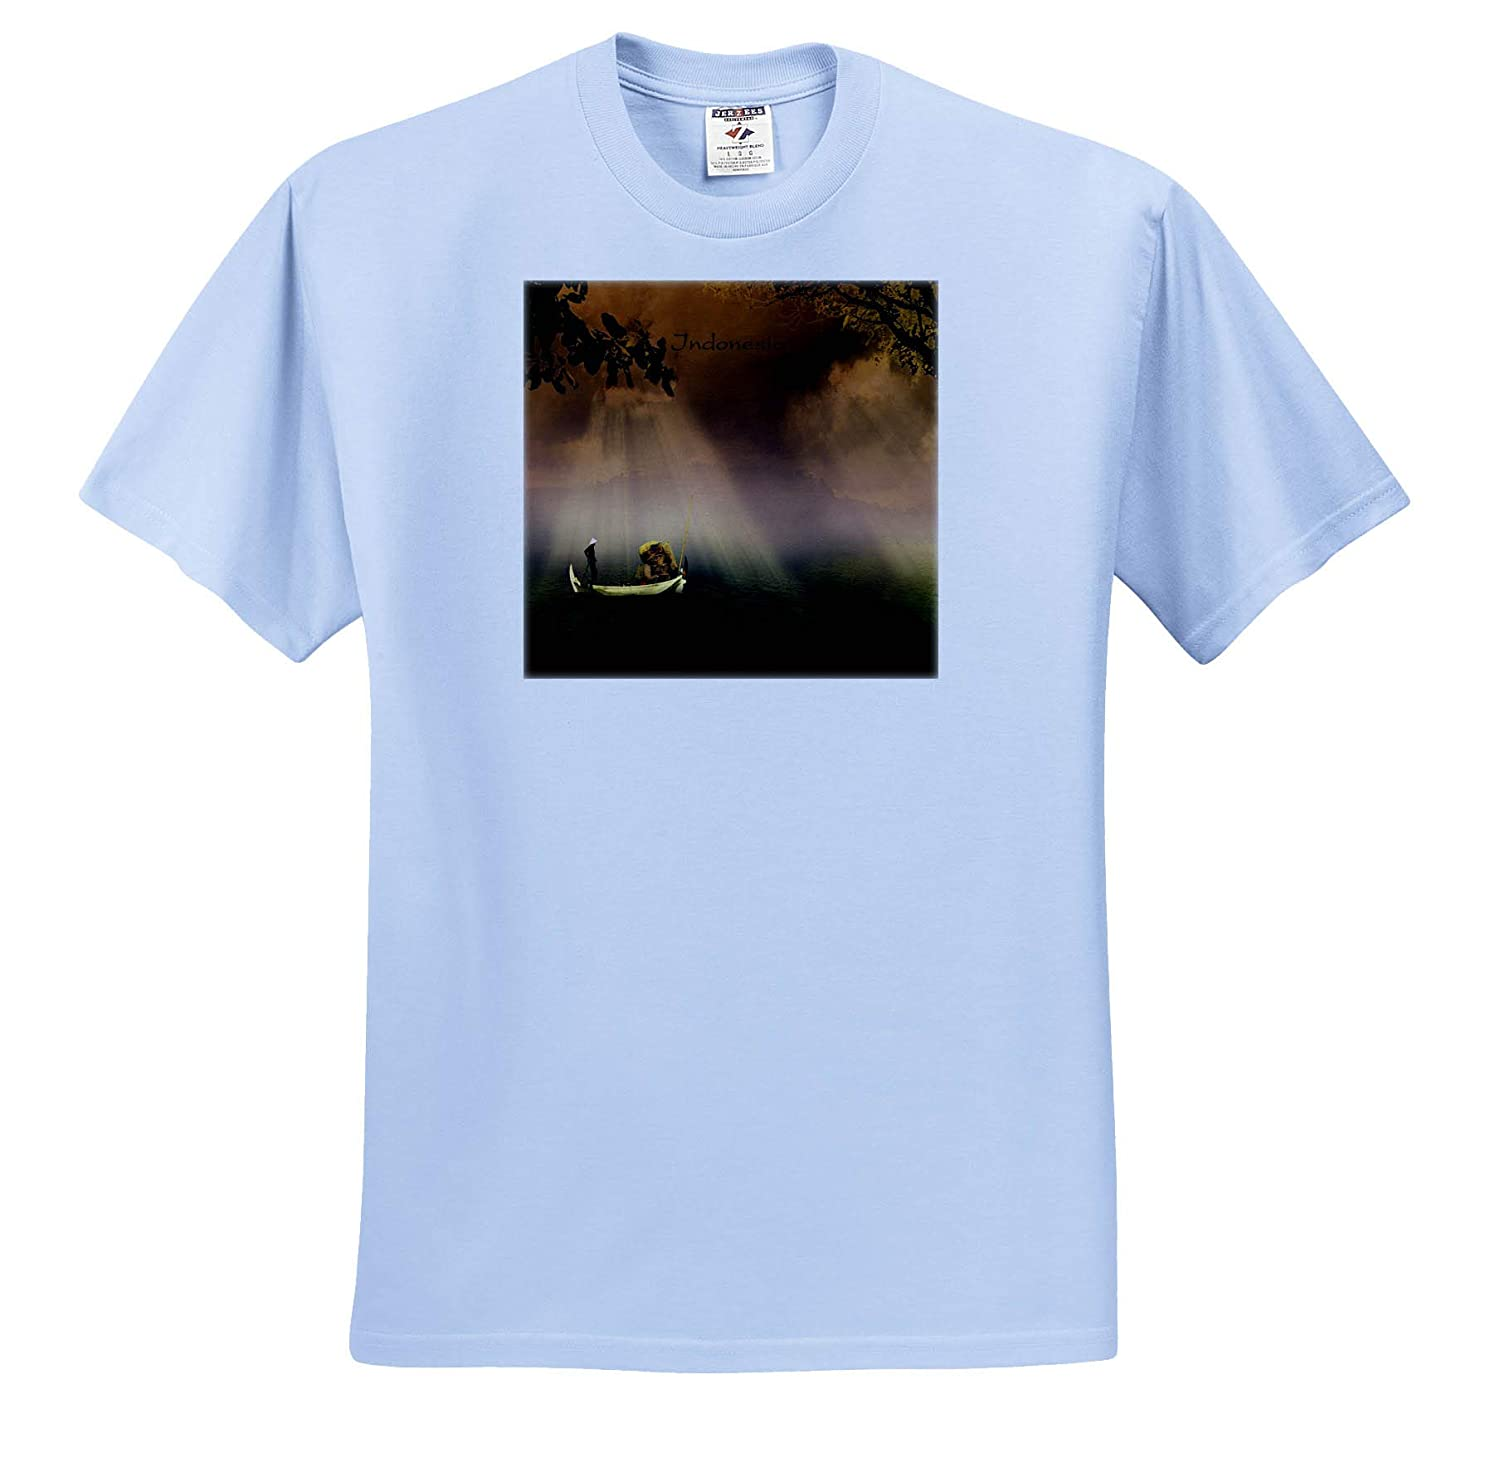 3dRose Lens Art by Florene T-Shirts Worlds Exotic Places Image of Fisherman in Boat at Sunset in Indonesia